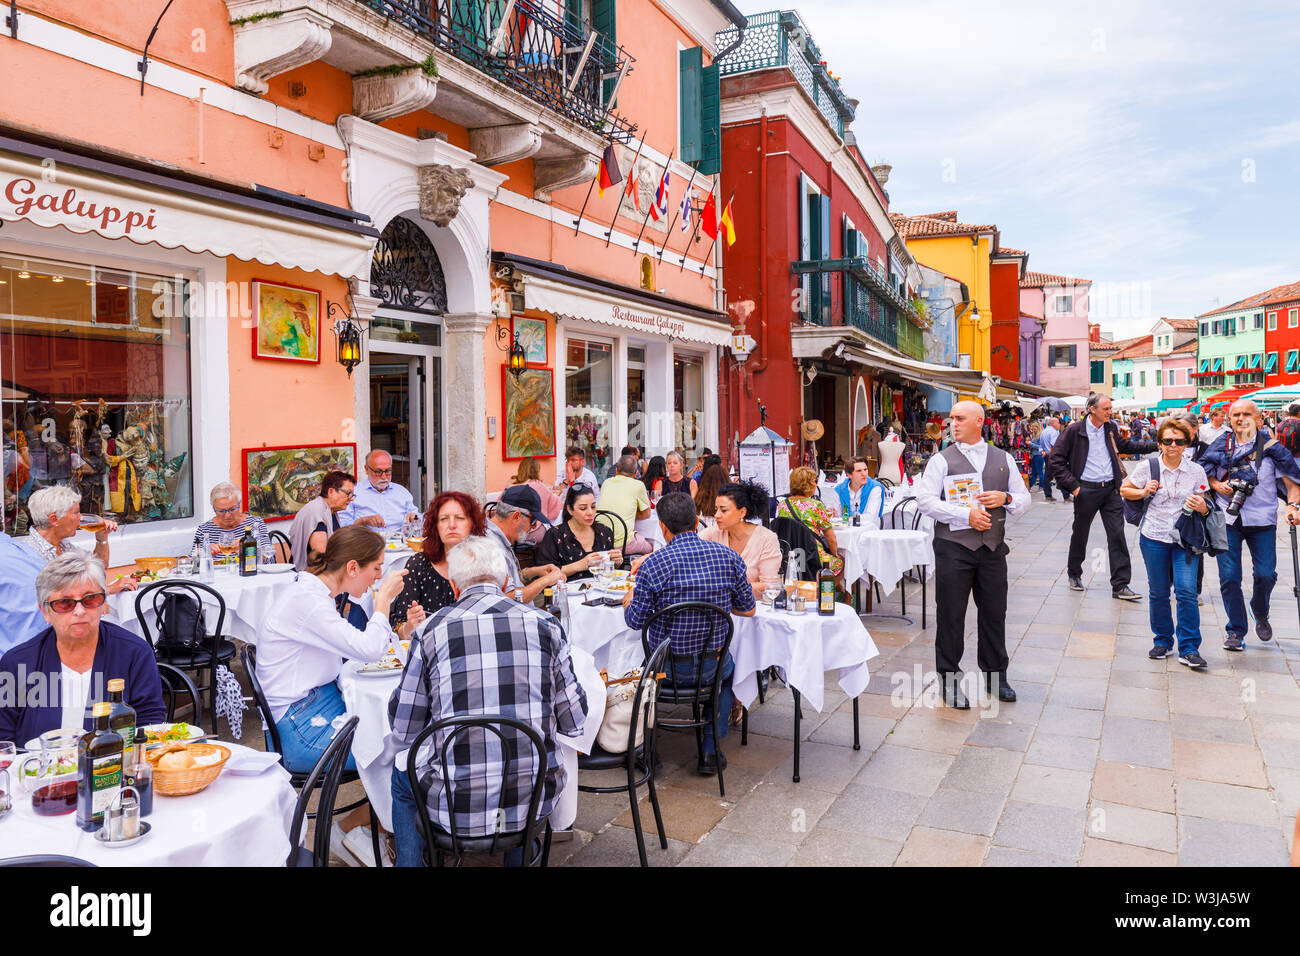 Tourists eating al fresco outside at tables in the street in the busy, bustling centre of Burano, a small island in Venice Lagoon, Venice, Italy - Stock Image